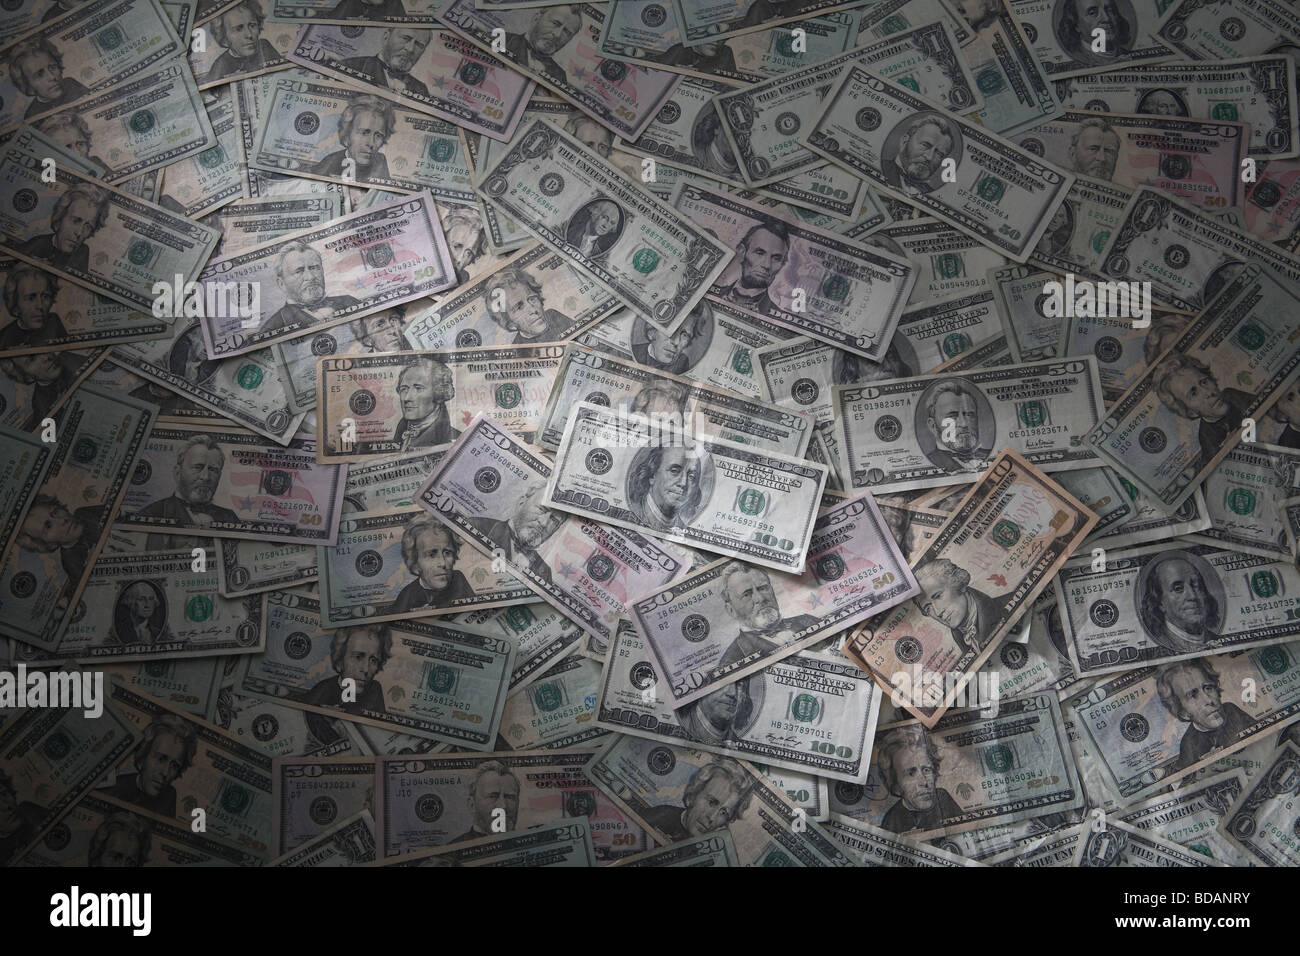 An arrangement of common American currency denominations. - Stock Image